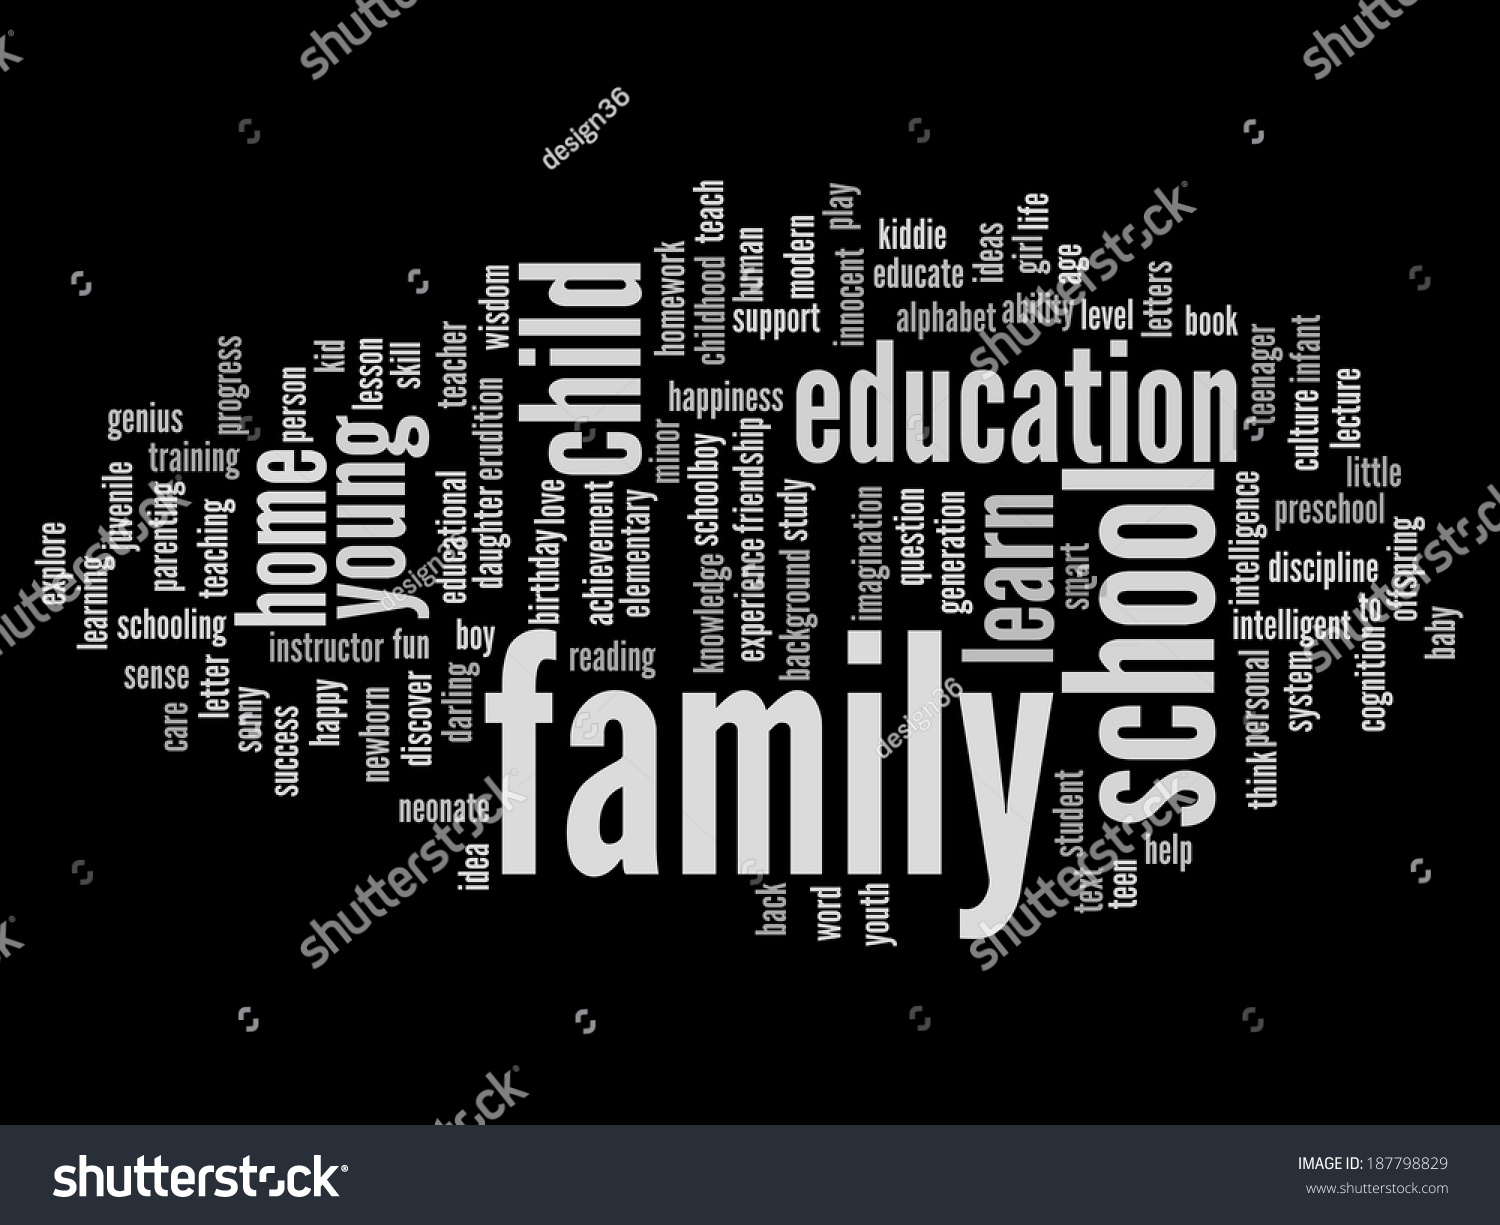 Concept Conceptual Education Abstract Word Cloud Stock Illustration Books To Learn Electronics Conceptually On Learning About Or Black Background Metaphor Child Family